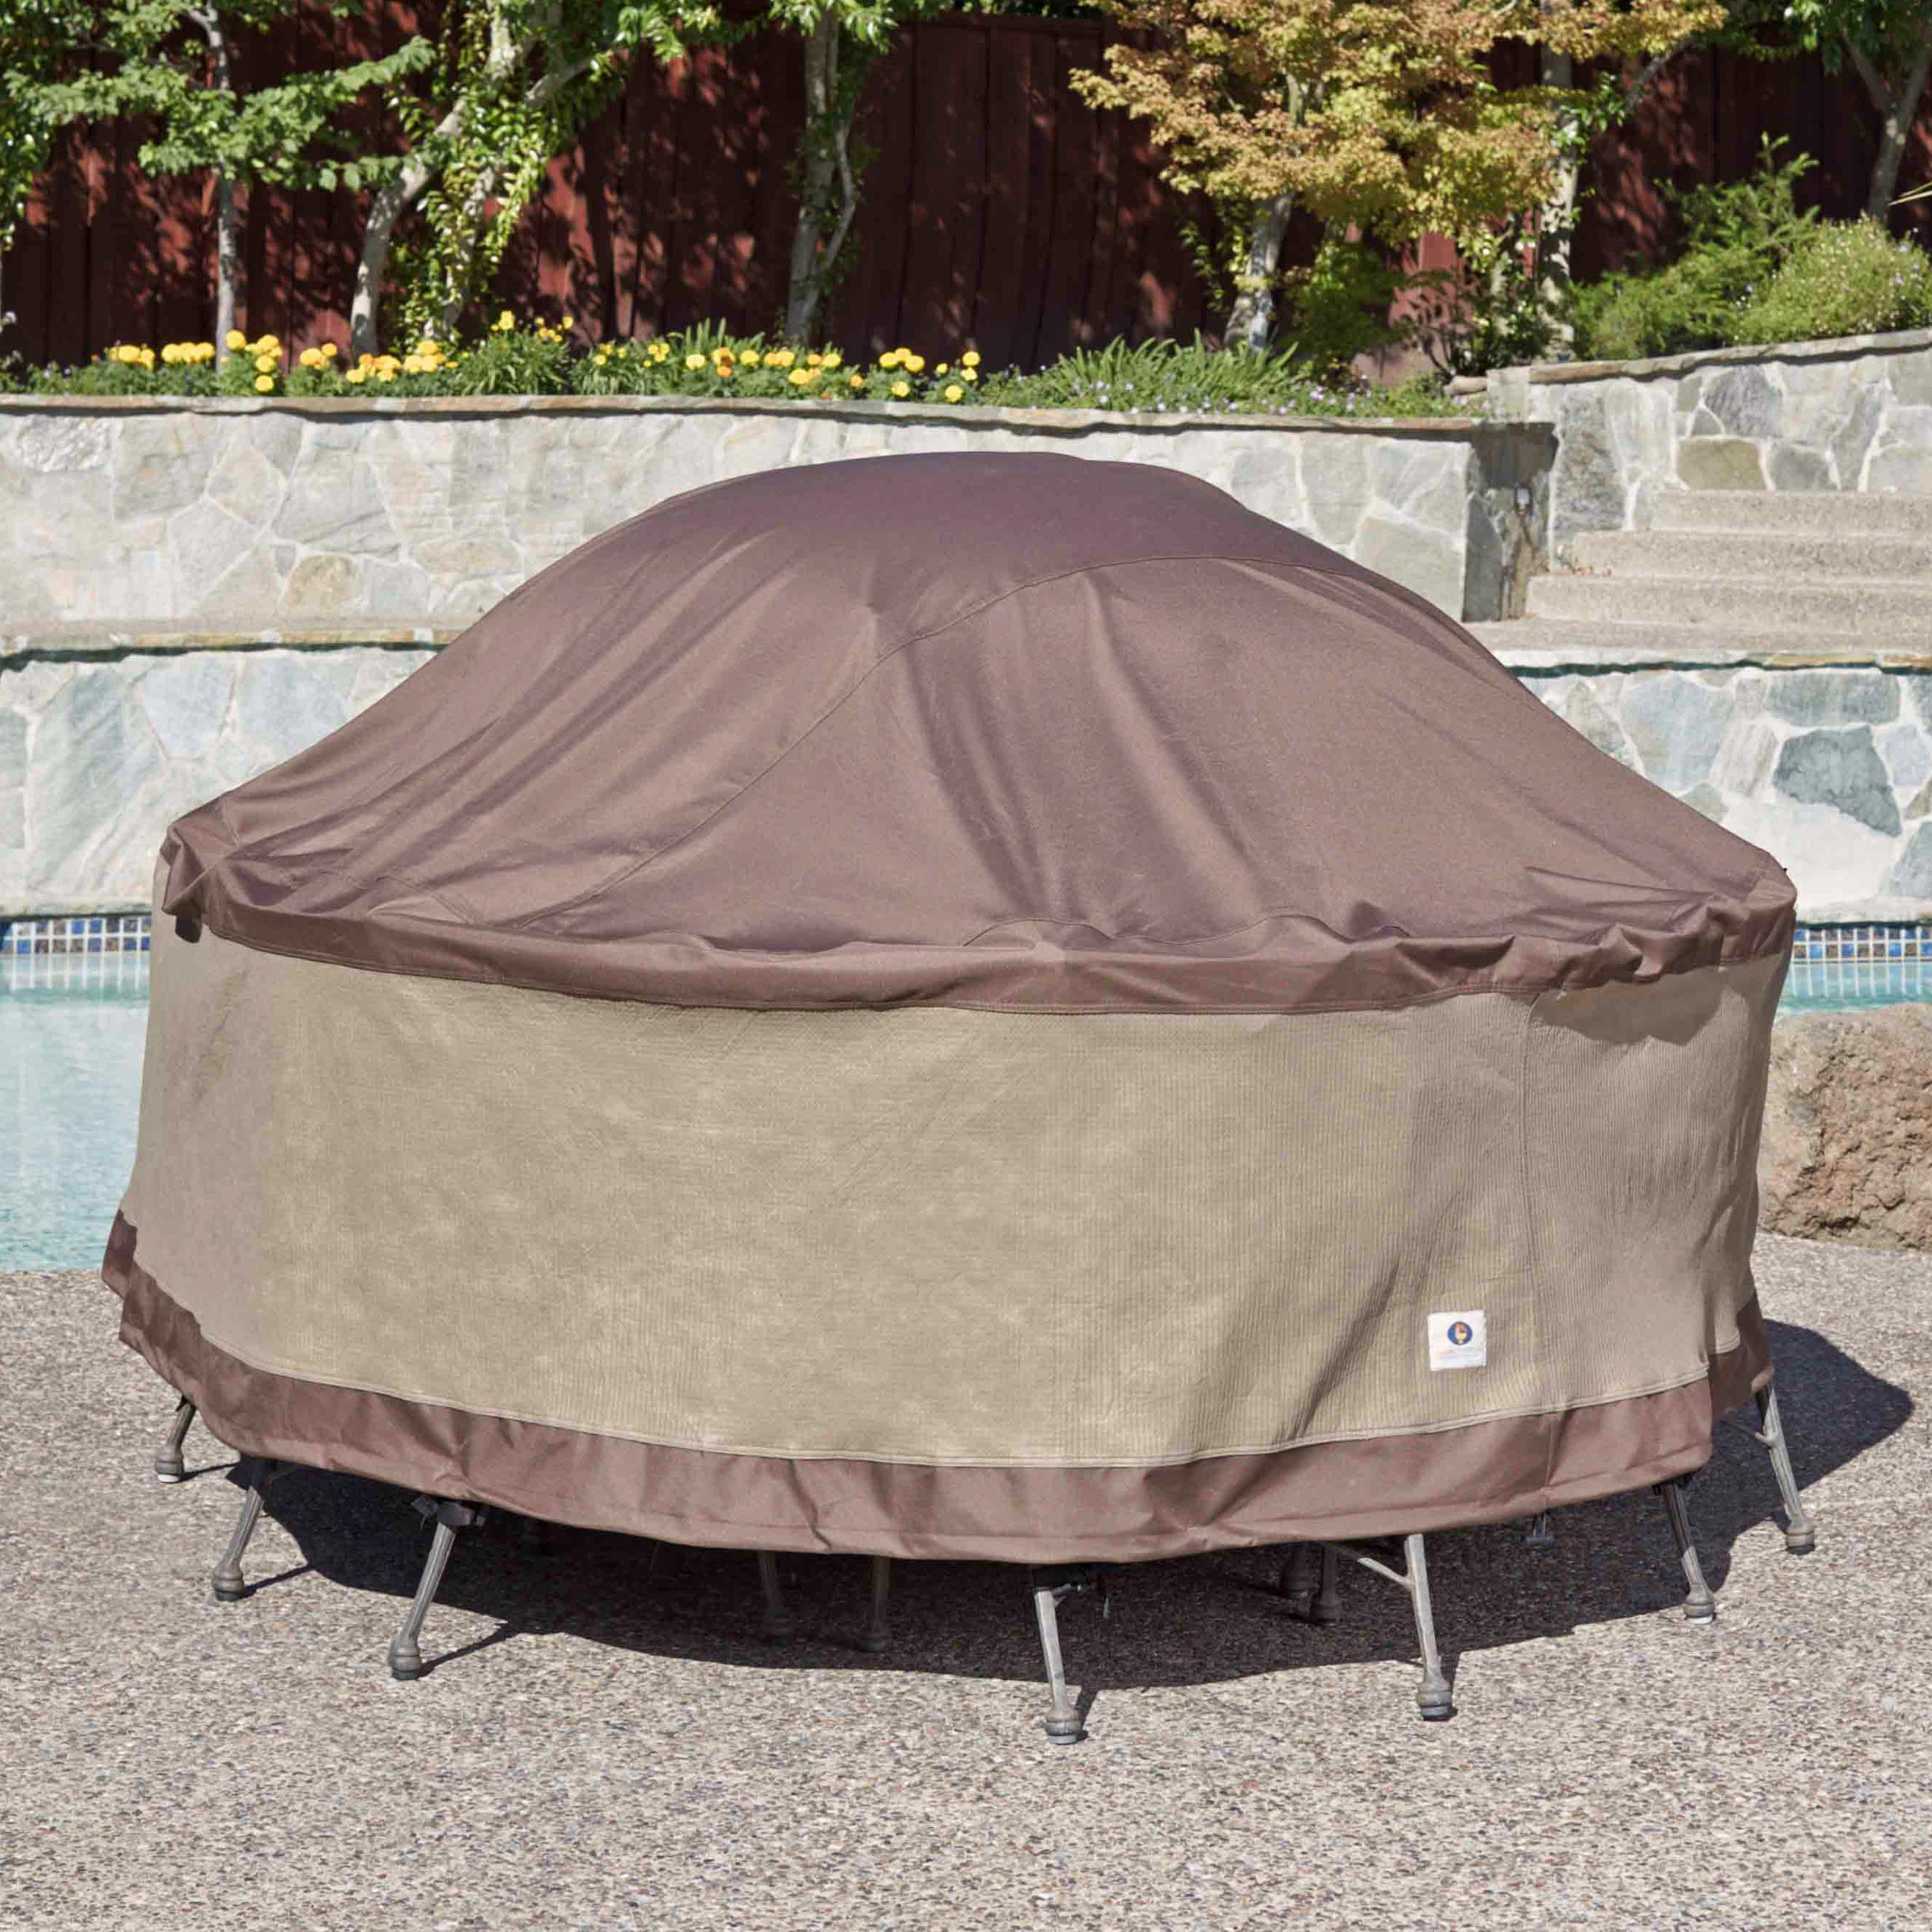 duck and cover Duck covers waterproof table & chairs patio cover - 85 - cappuccino brown : the mtr09090 duck covers are made of an innovative multi-layered synthetic material that.